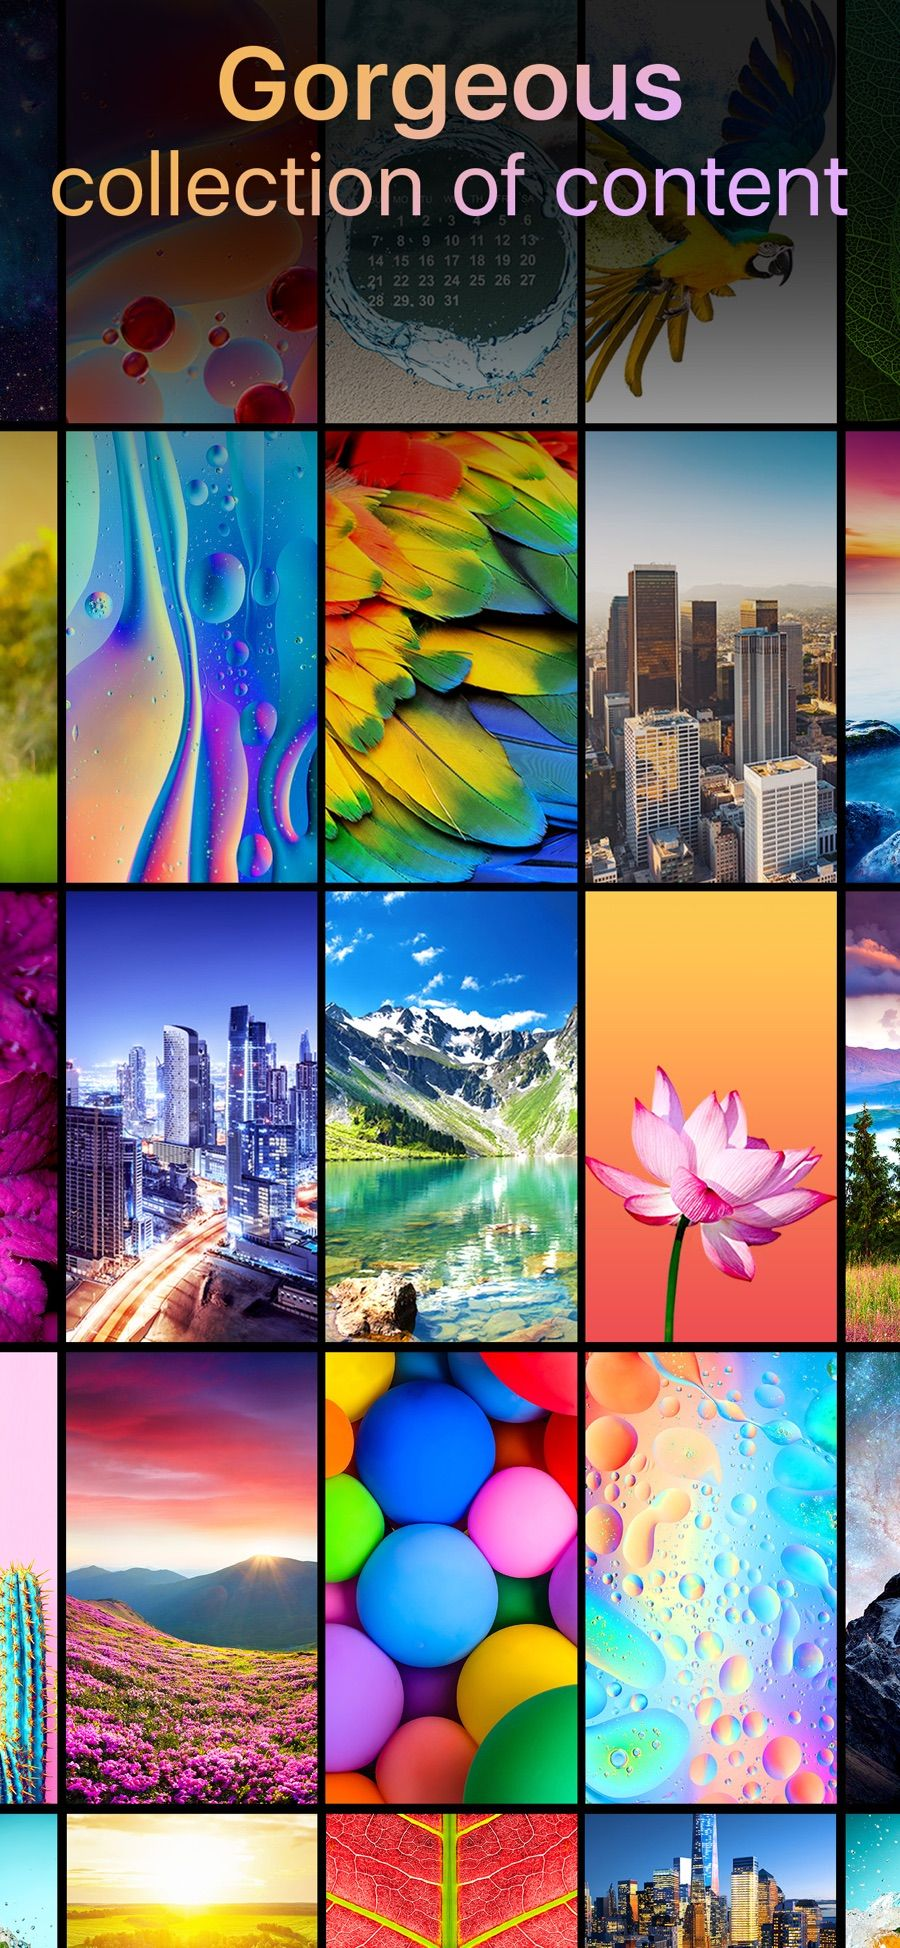 Live Wallpapers Now On The App Store Live Wallpaper Iphone Live Wallpapers Iphone Backgrounds Tumblr